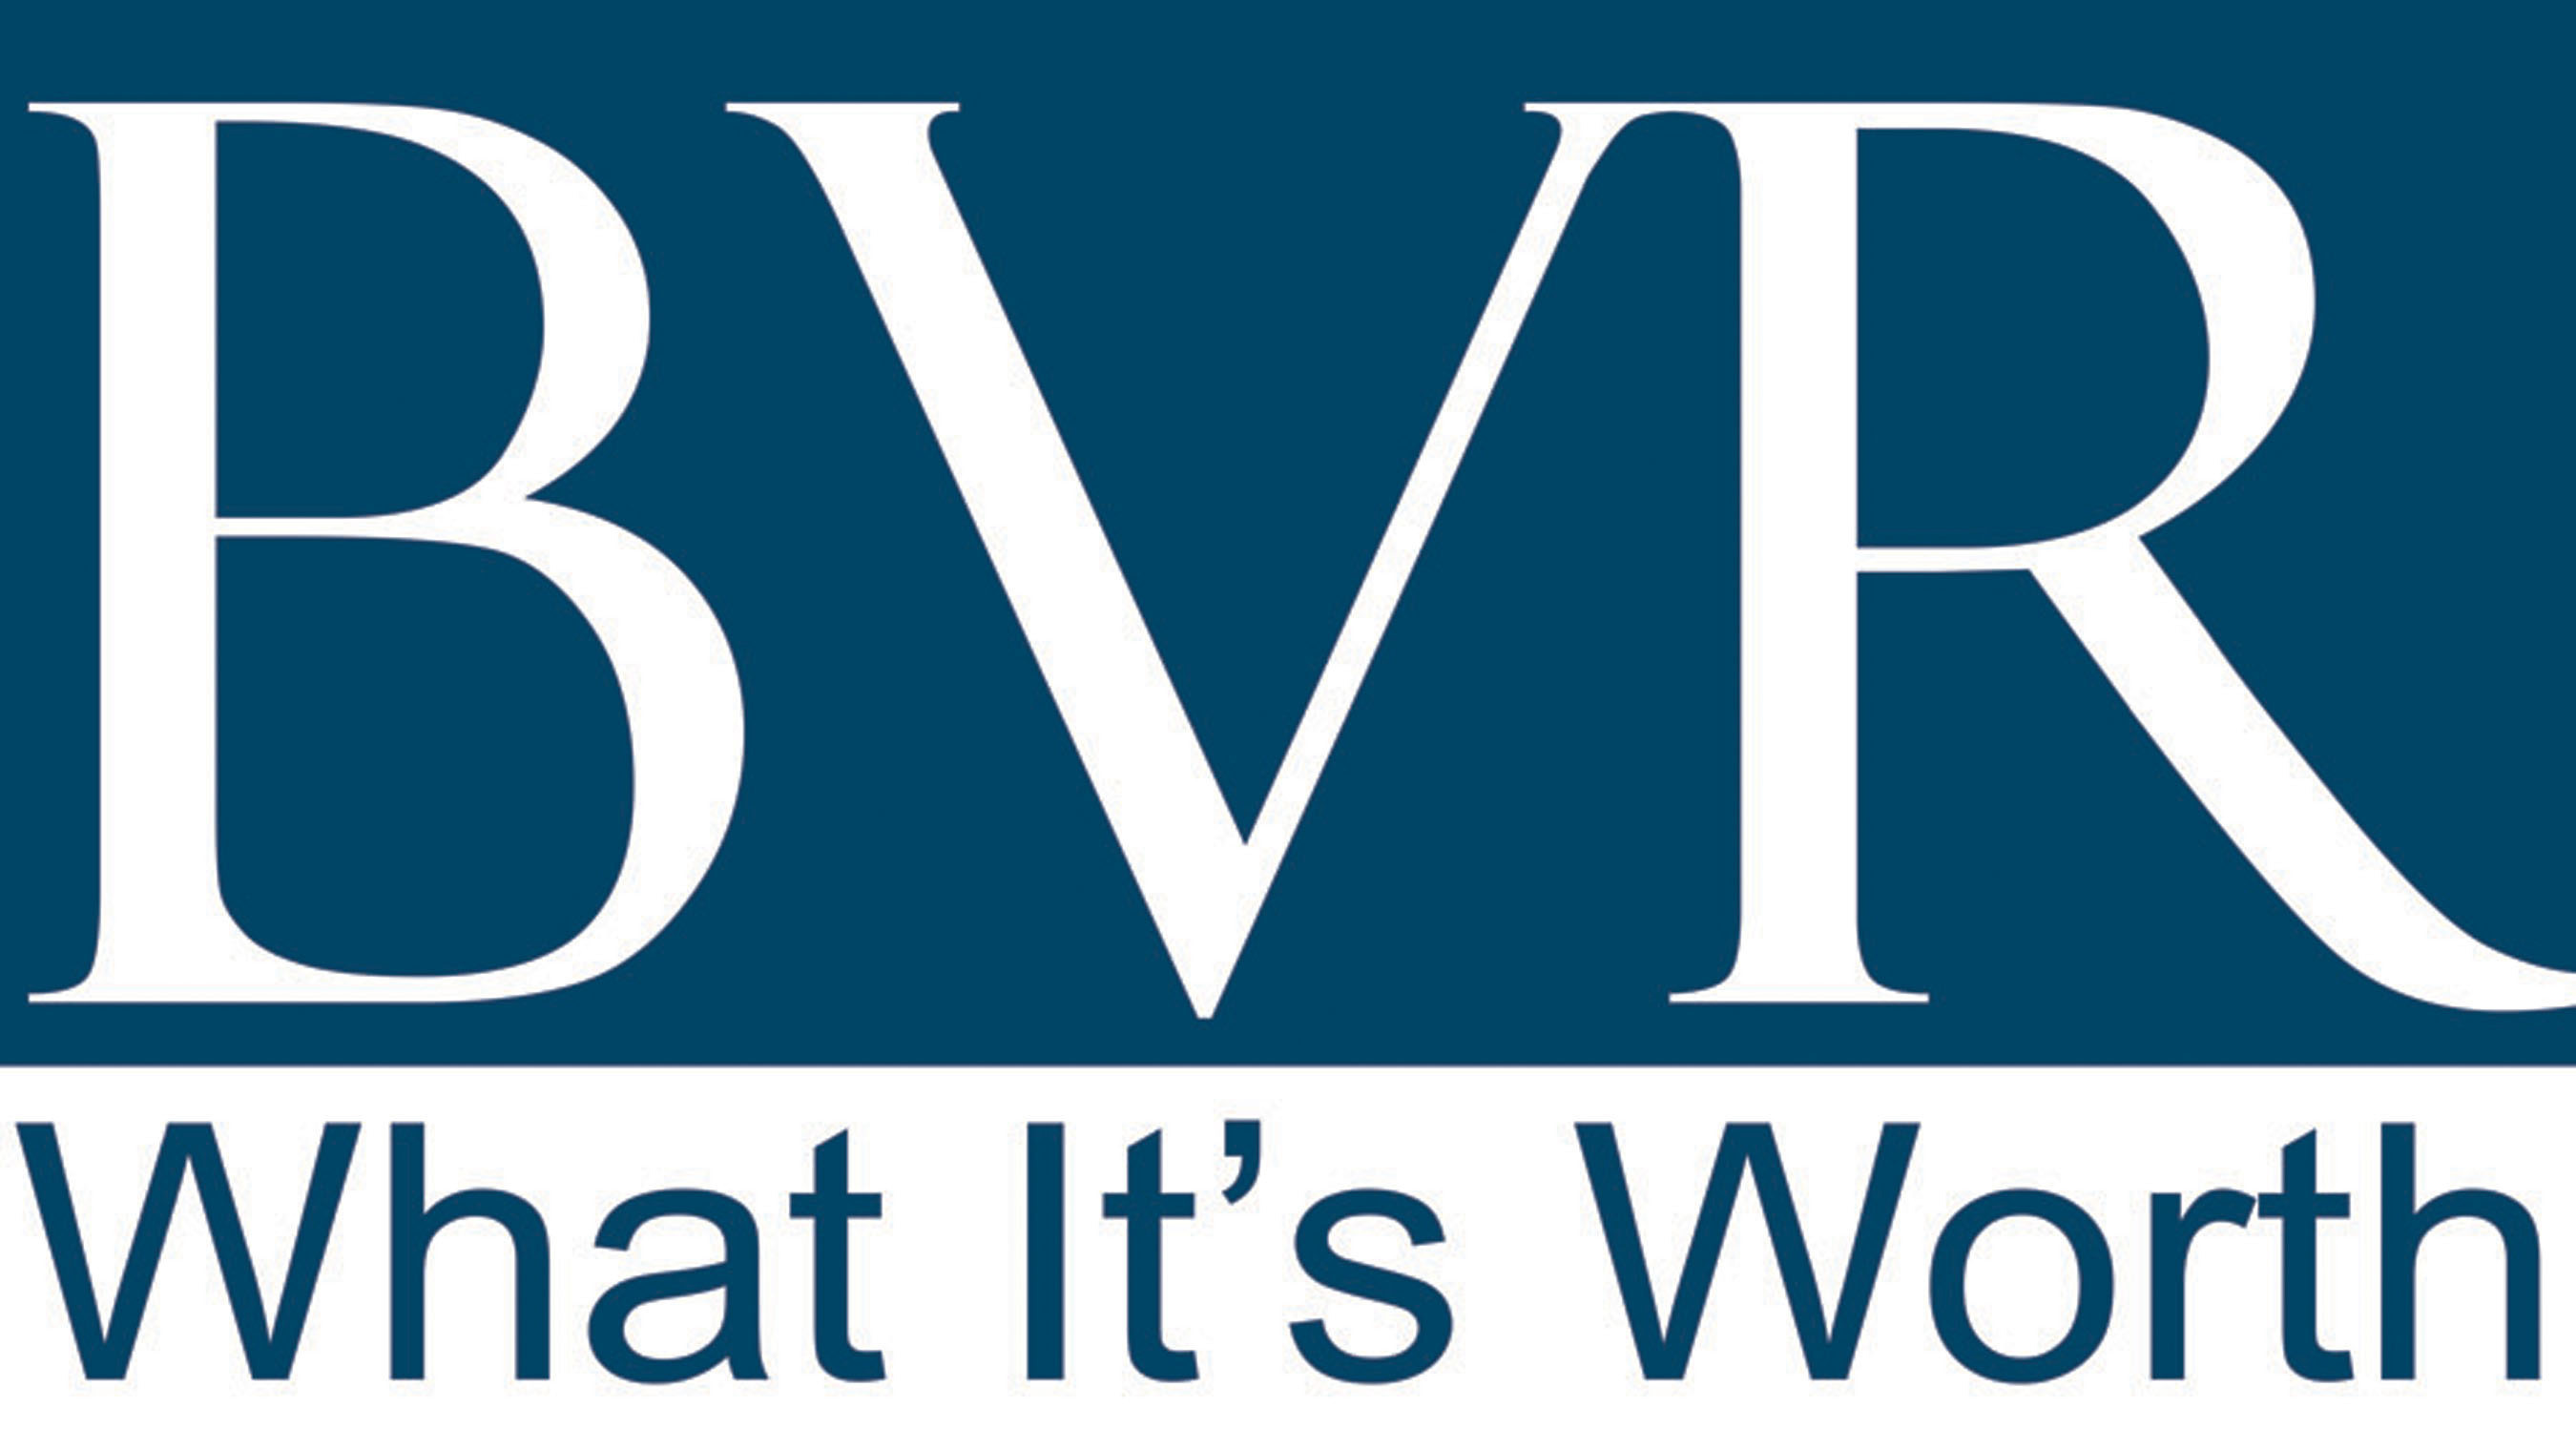 BVR Publishes Guide to Lost Profits and Other Commercial Damages